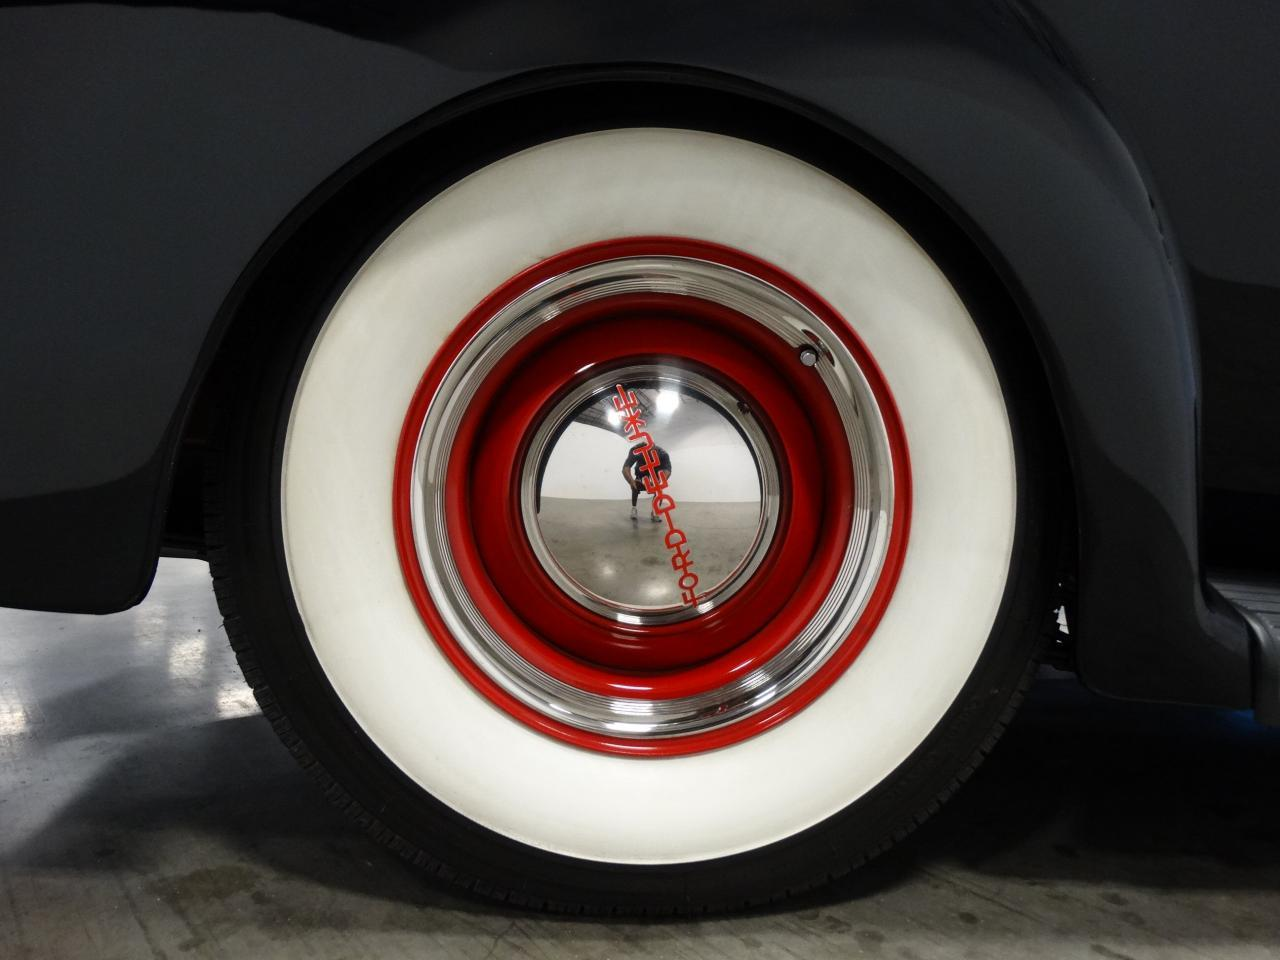 Large Picture of 1940 Ford Sedan - $58,000.00 Offered by Gateway Classic Cars - Nashville - KDR7